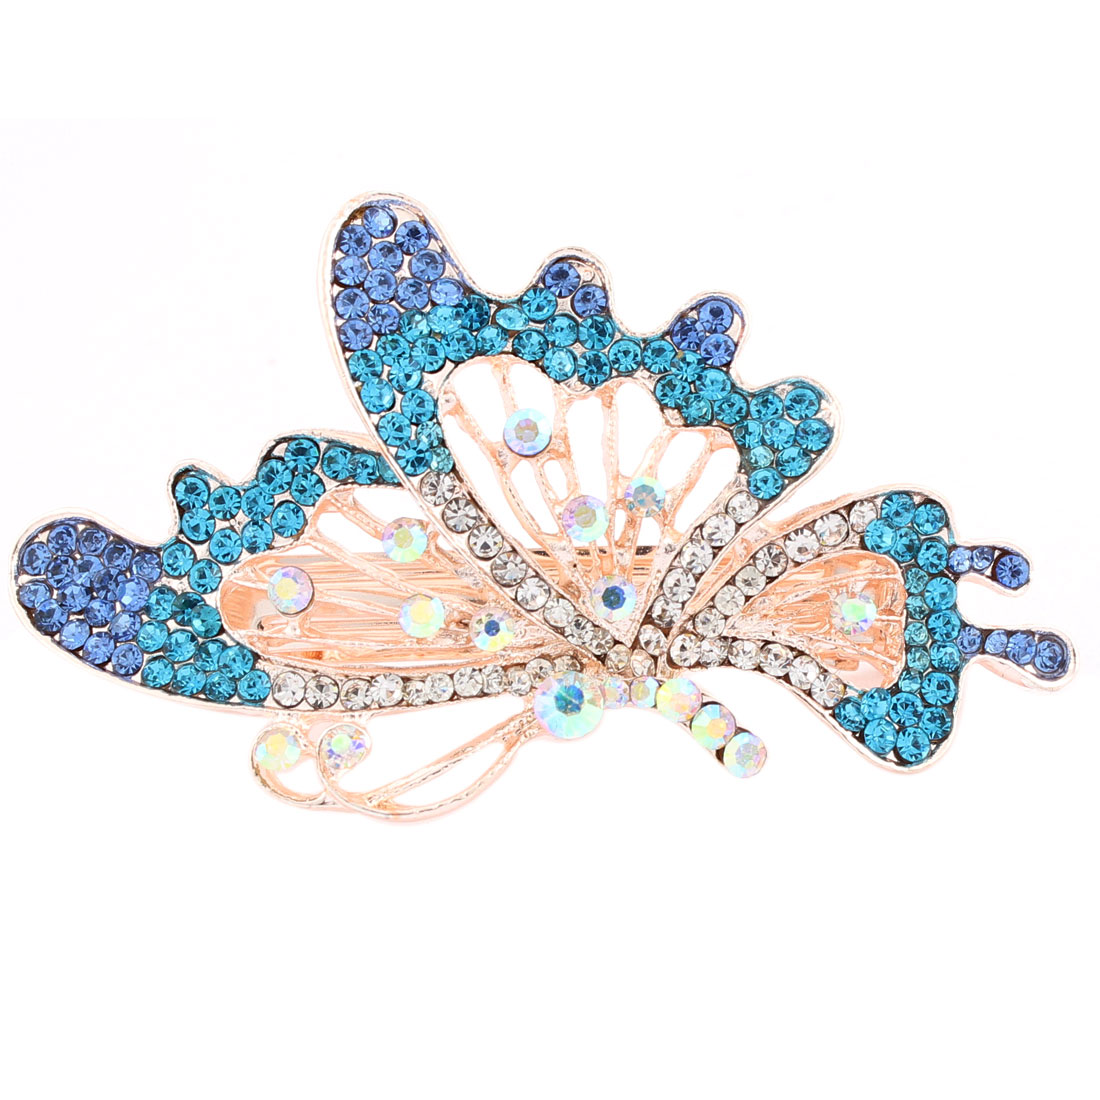 Lady Gold Plated Rhinestone Decor French Clip Hairclip Barrette Colorful